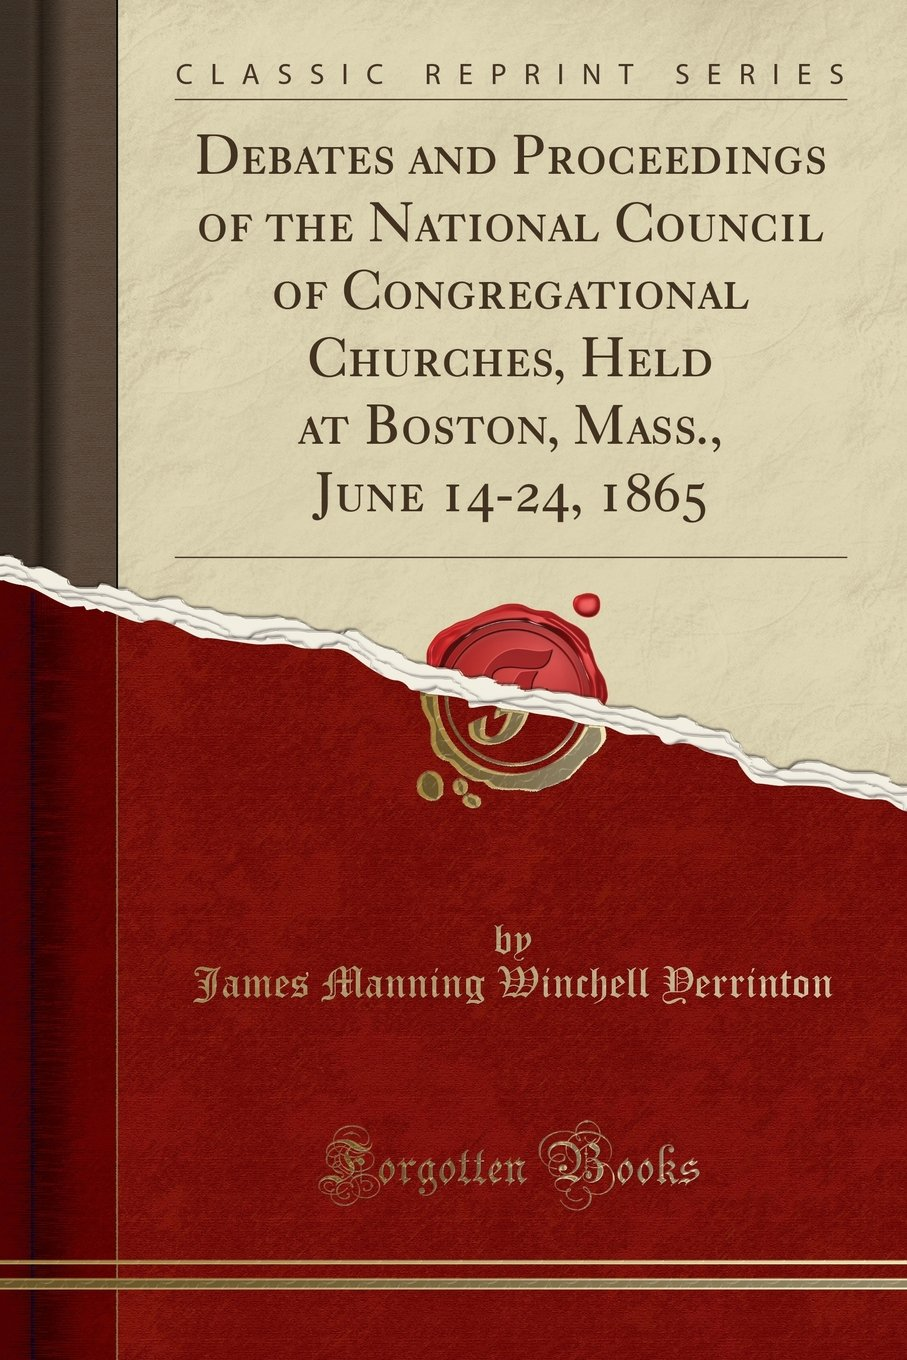 Debates and Proceedings of the National Council of Congregational Churches, Held at Boston, Mass., June 14-24, 1865 (Classic Reprint) pdf epub